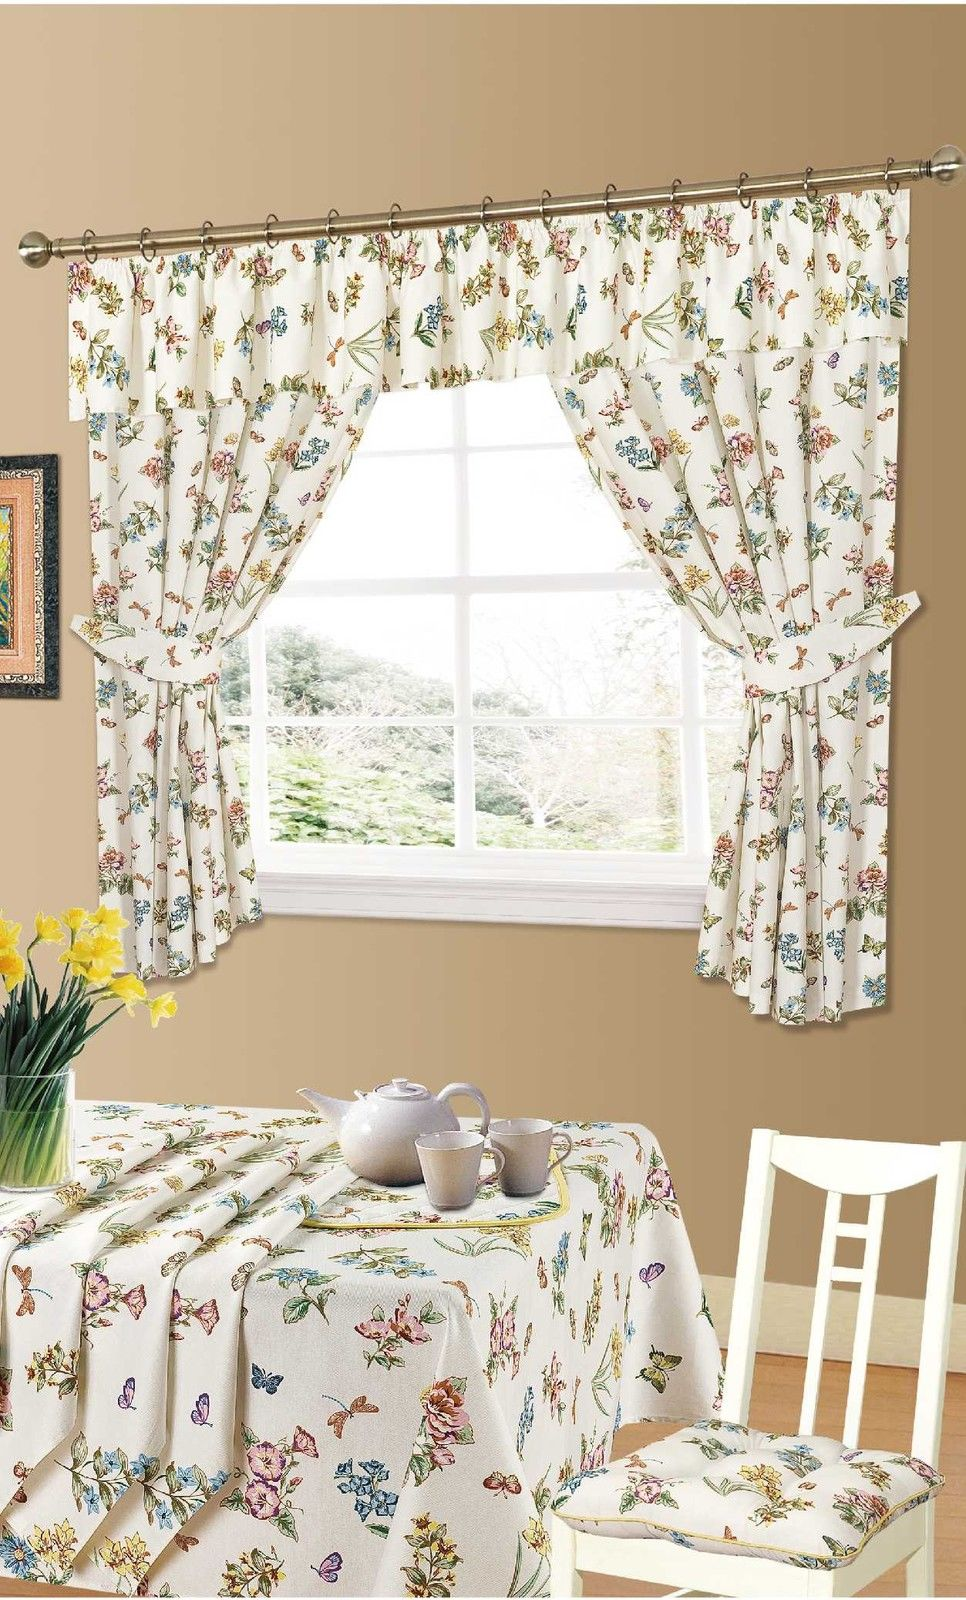 Butterfly Kitchen Curtains from Century Textiles